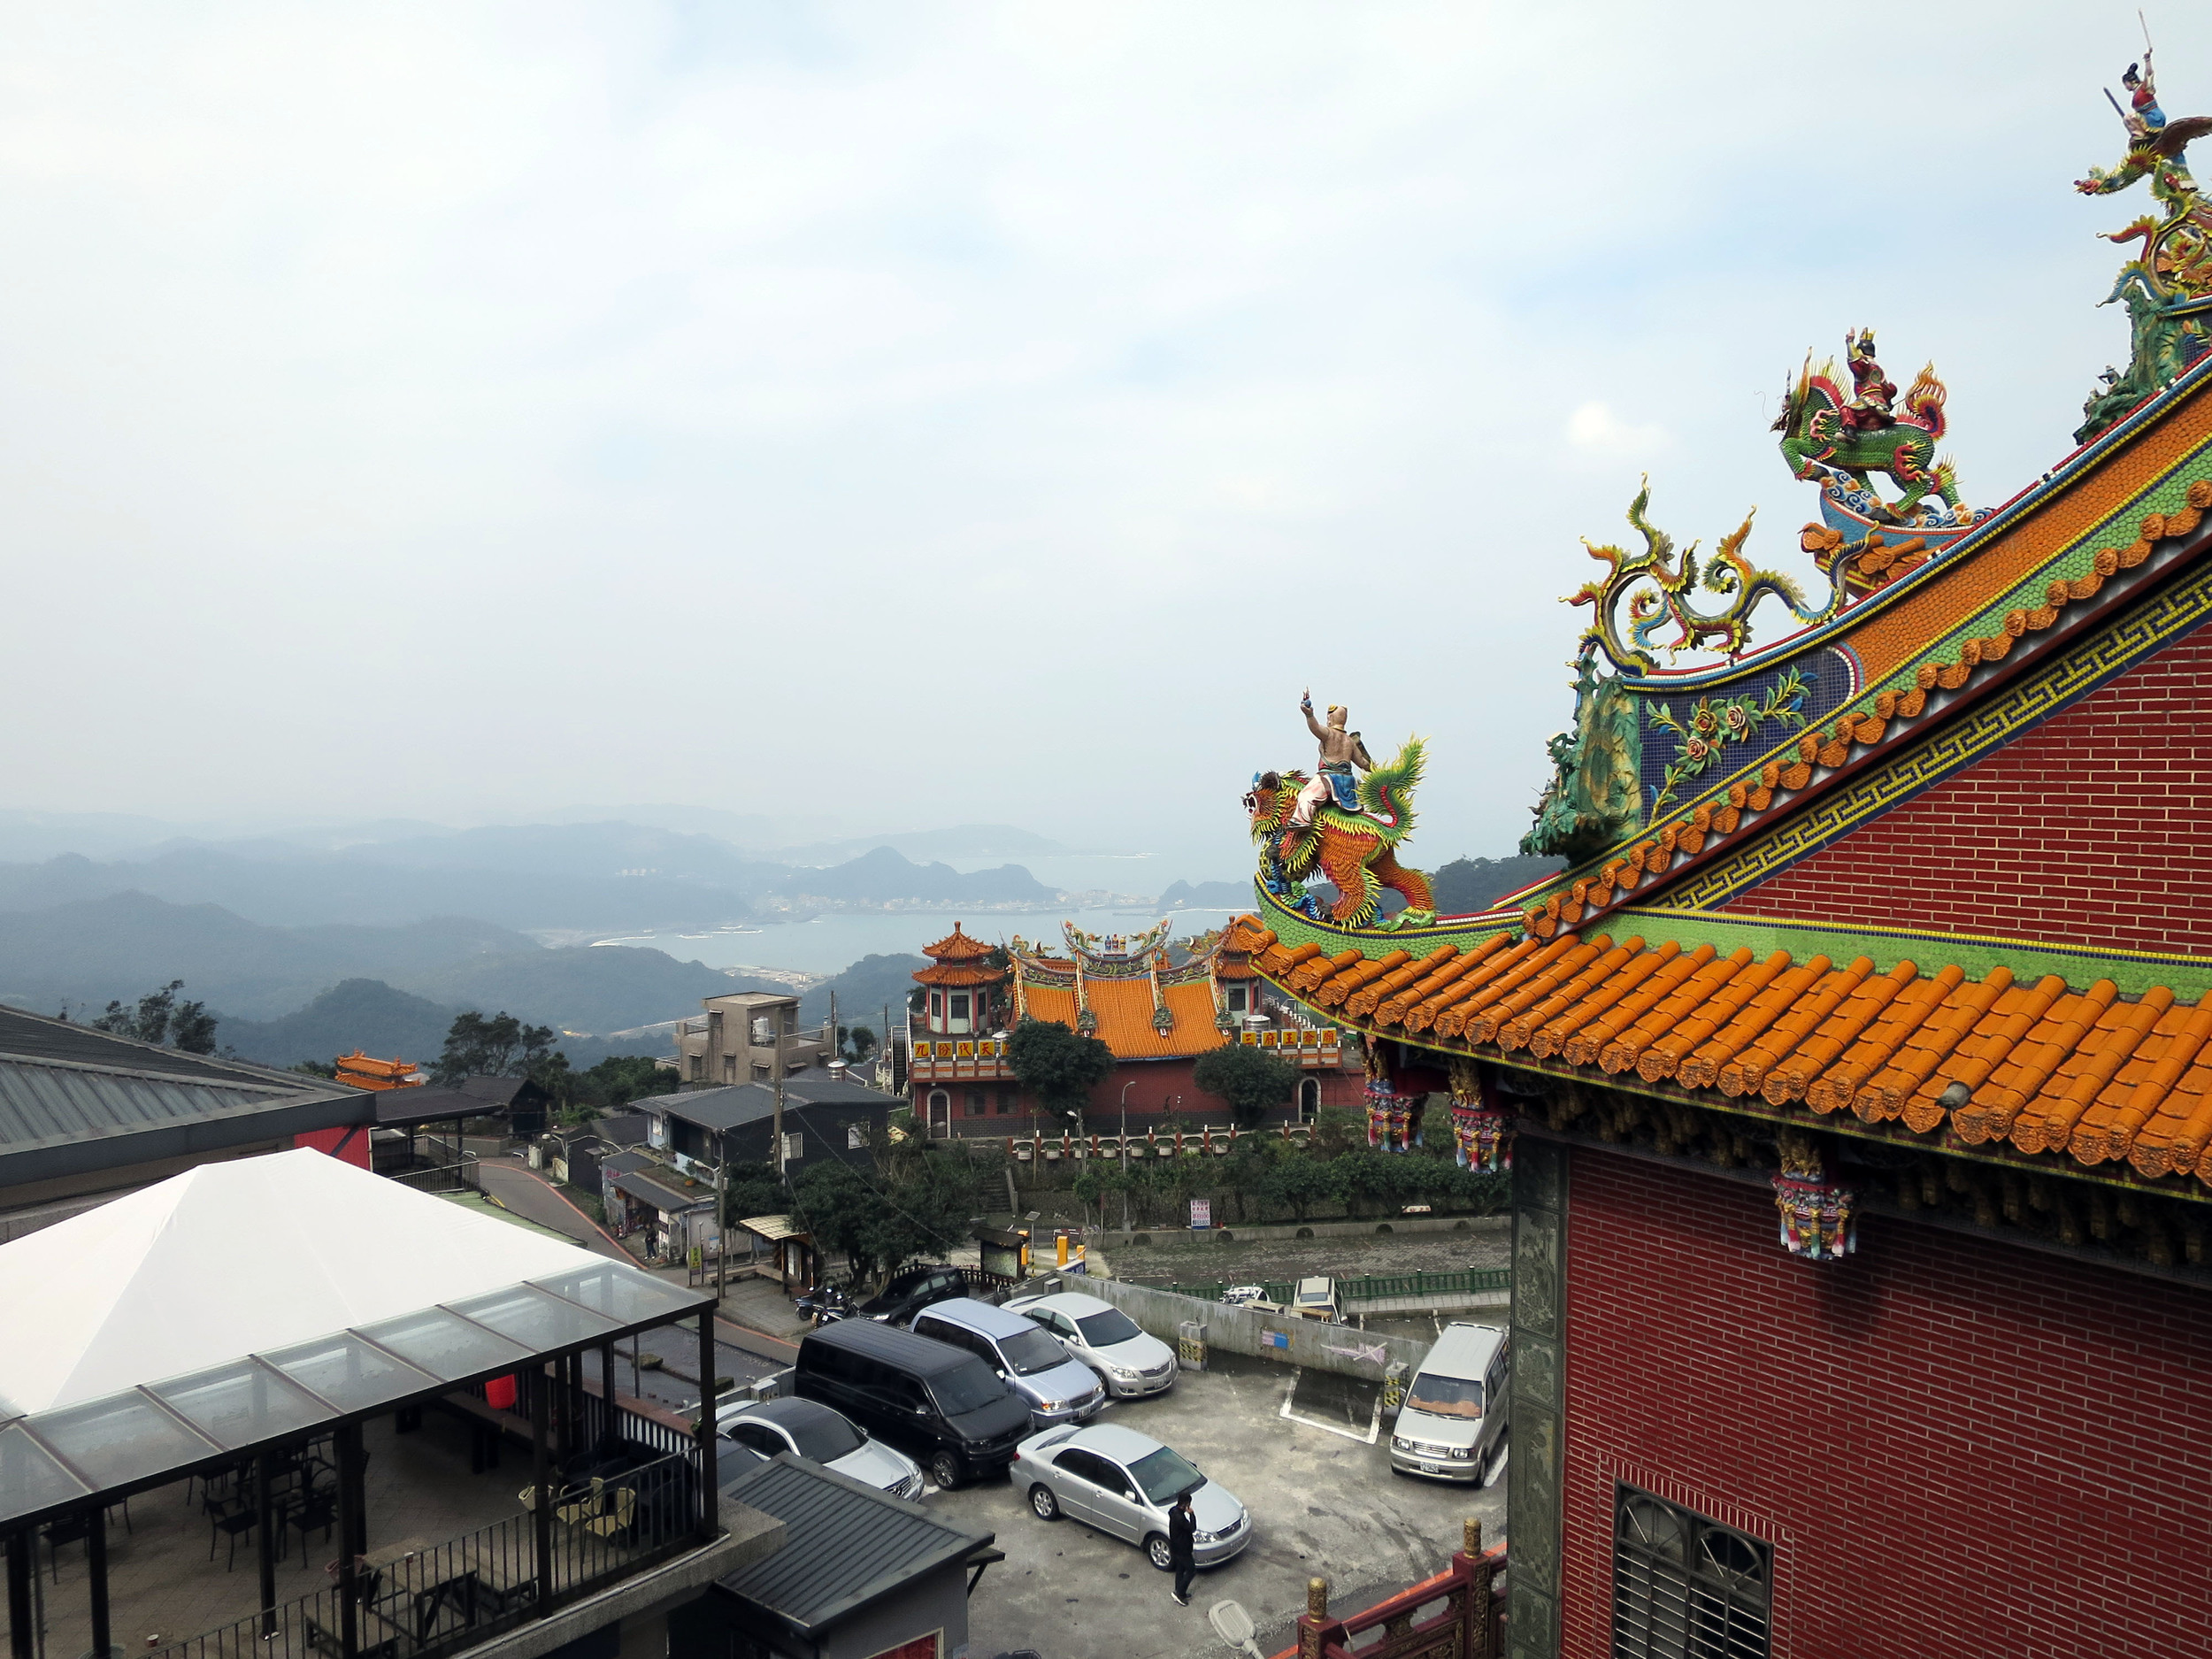 View from Jiufen bus stop. Temple roofs and the Pacific Ocean in Taiwan.